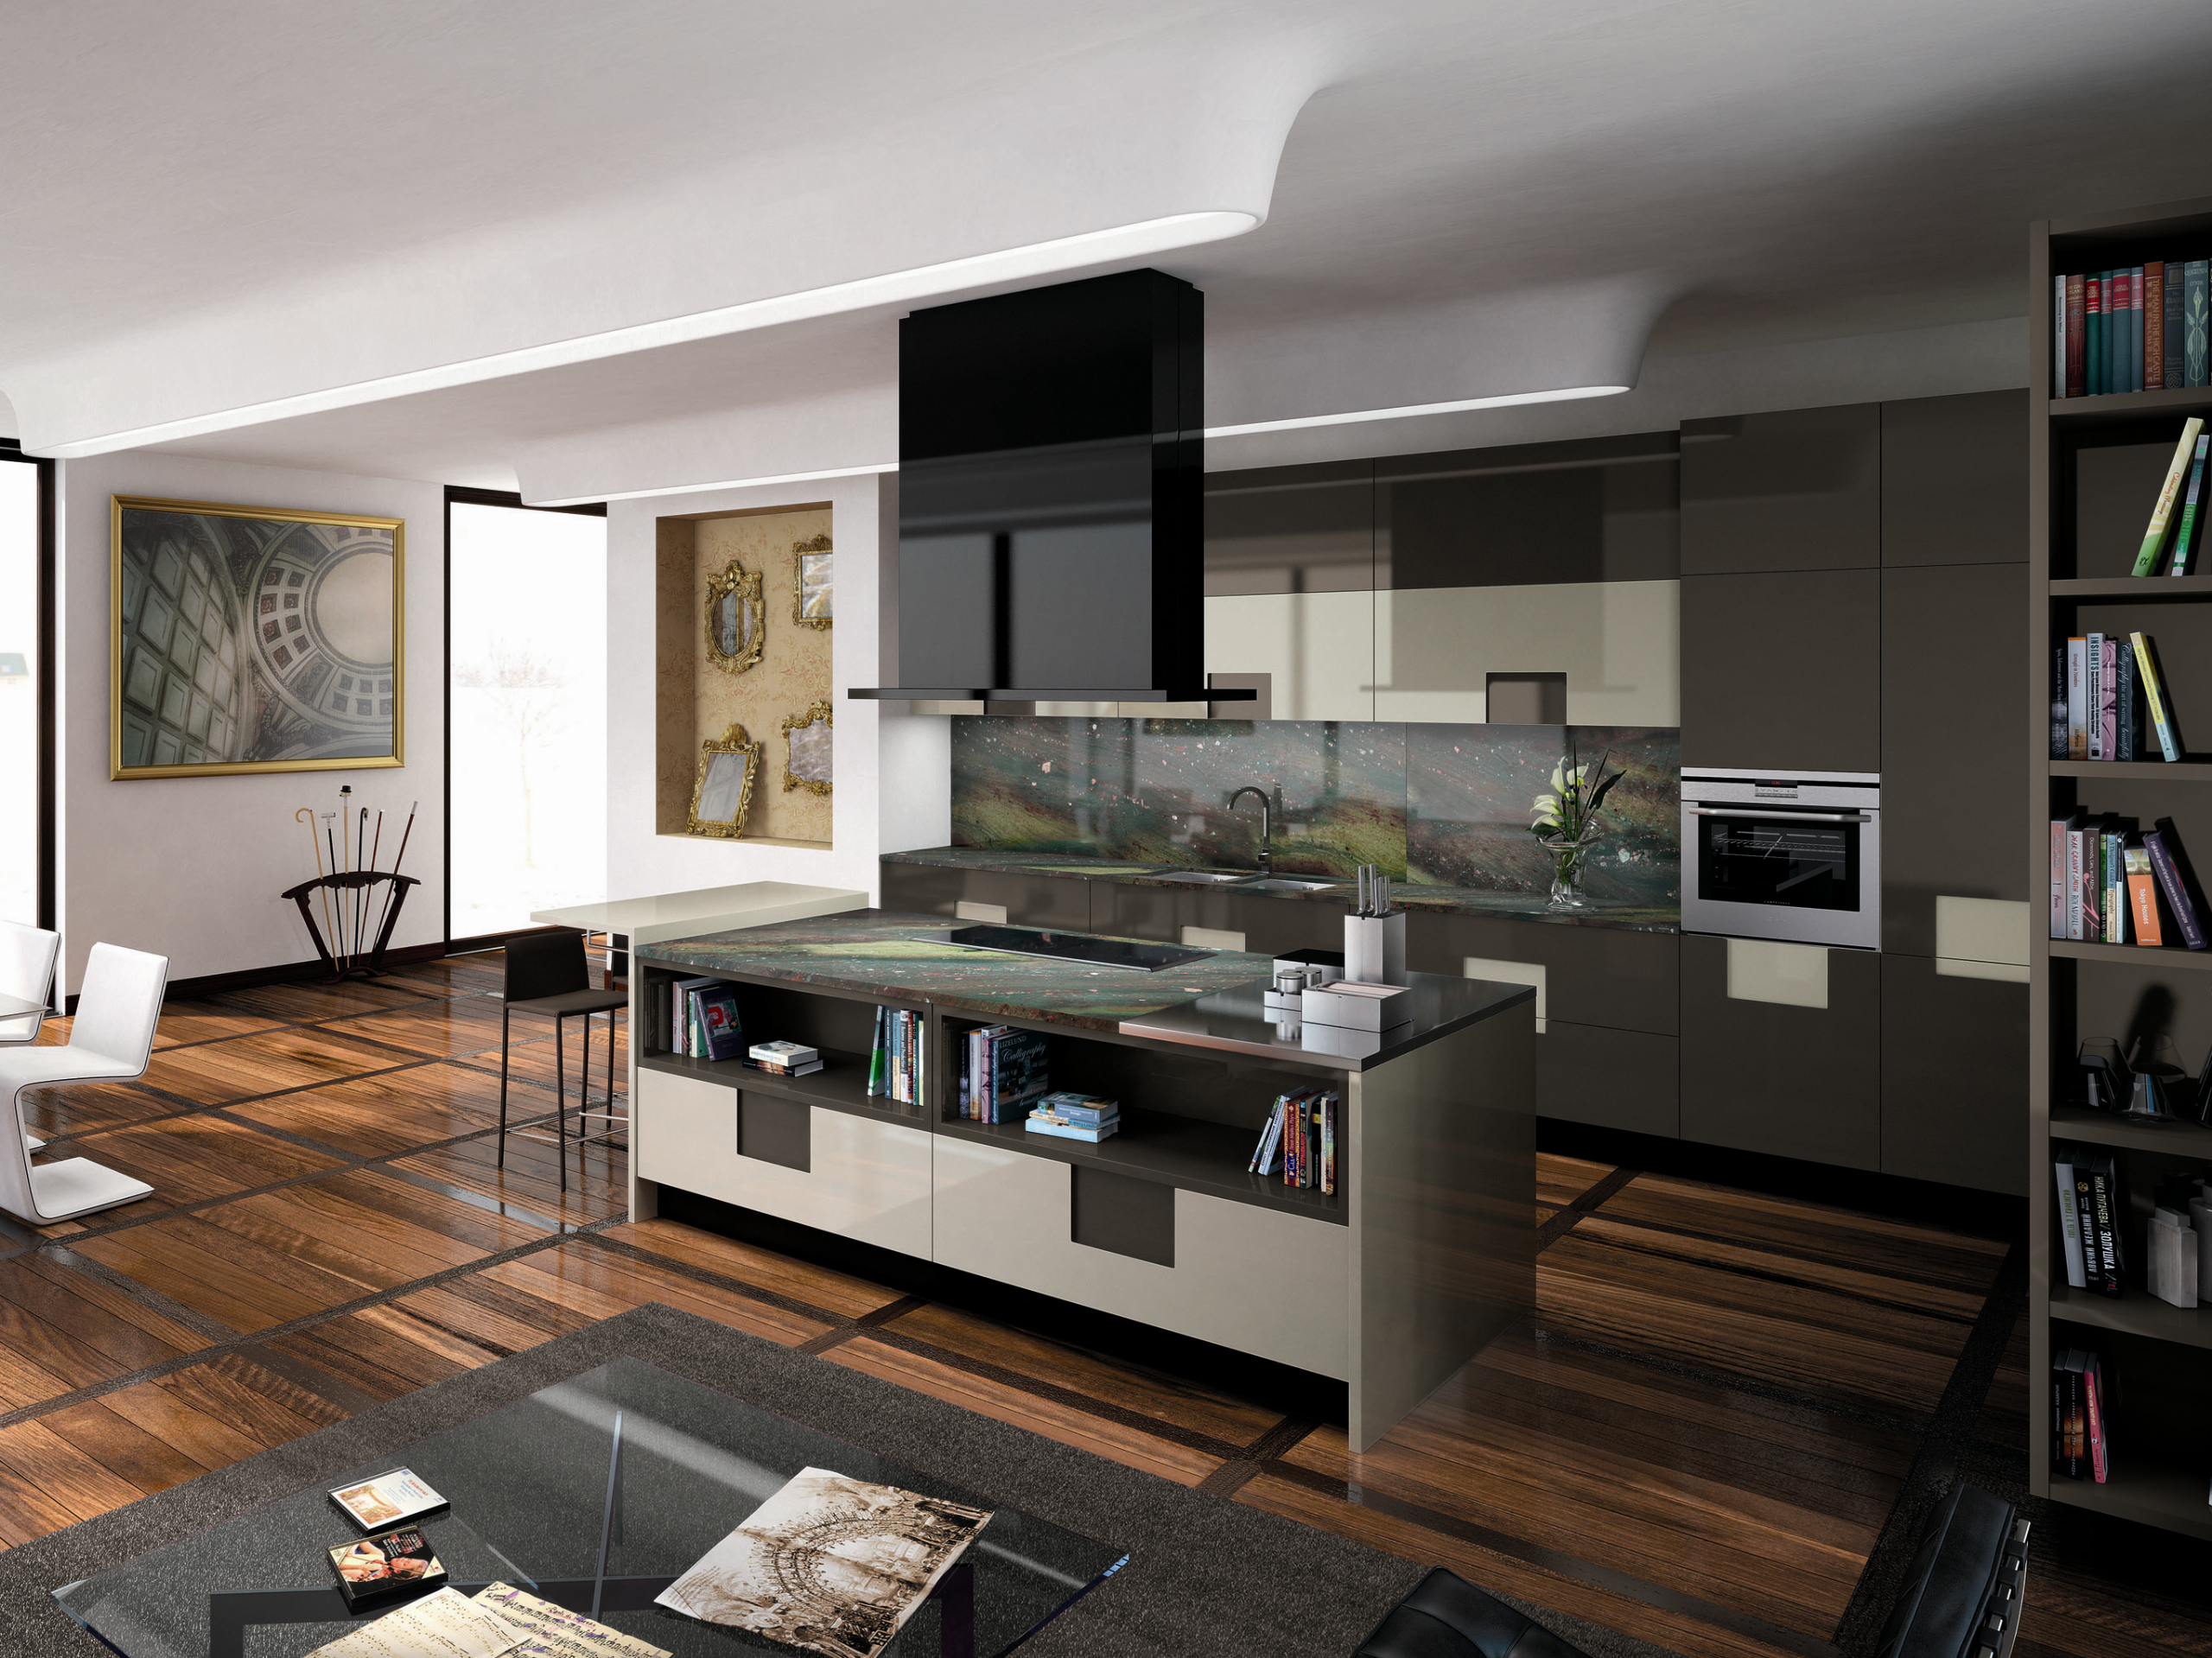 Lacquered kitchen carr 05 carr collection by ernestomeda for Ernesto meda cucine